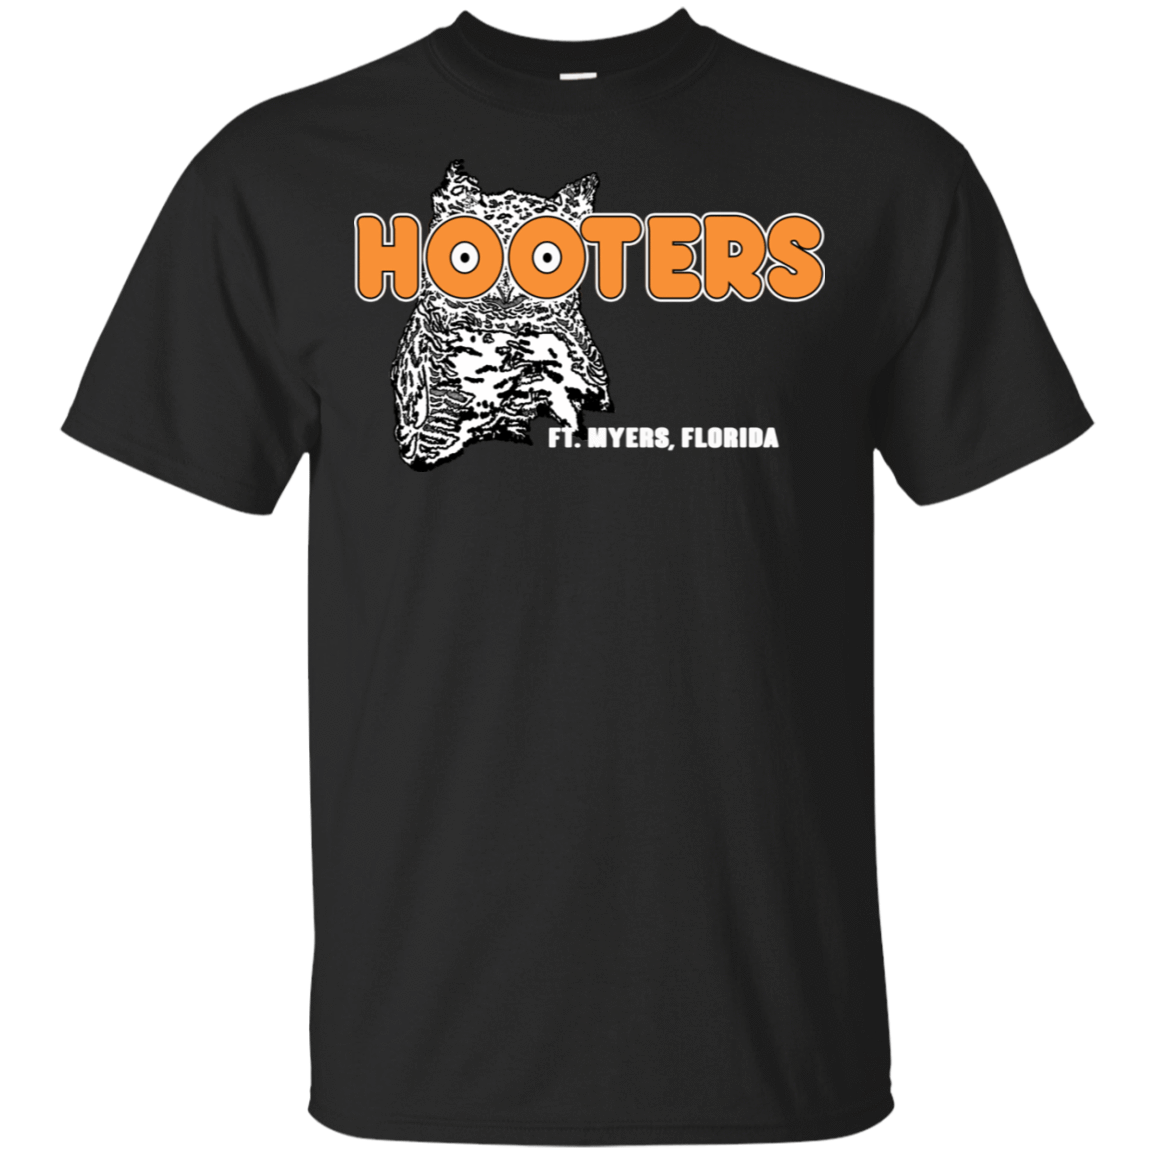 Hooters T-Shirts Fort Myers, Florida 22-113-73155974-252 - Tee Ript